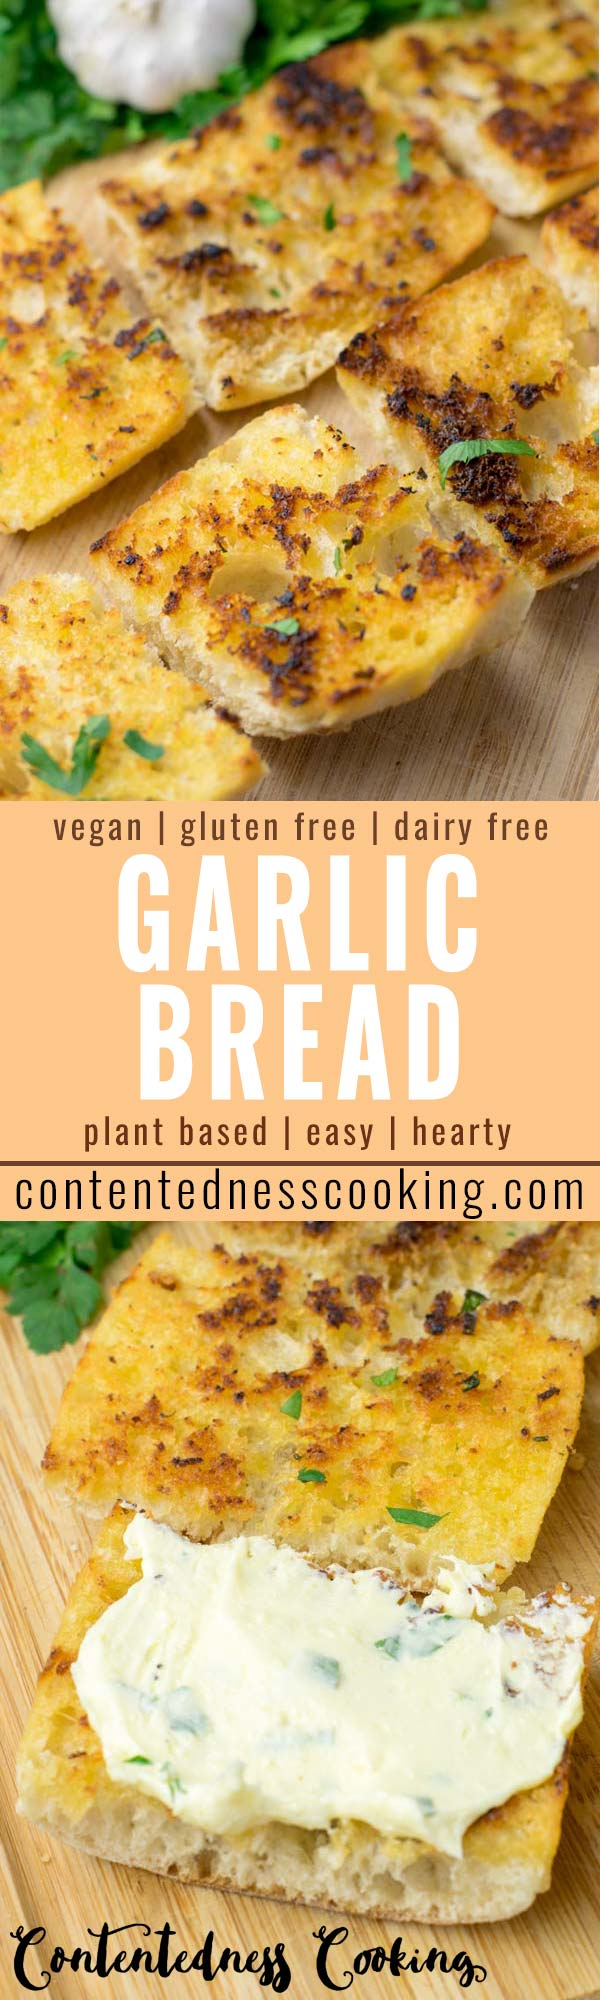 This Garlic Bread is super easy to make and the ultimate comfort food for everyone. No one would ever guess it is entirely vegan, gluten free, taste so delicious like the real deal If not better that the whole family will always love for dinner, lunch, meal prep and so much more. . #vegan #dairyfree #glutenfree #dairyfree #vegetarian #budgetmeals #dinner #lunch #contentednesscooking #garlicbread #familyfood #kidsmeals #worklunchideas #mealprep #comfortfood #partyfood #appetizers